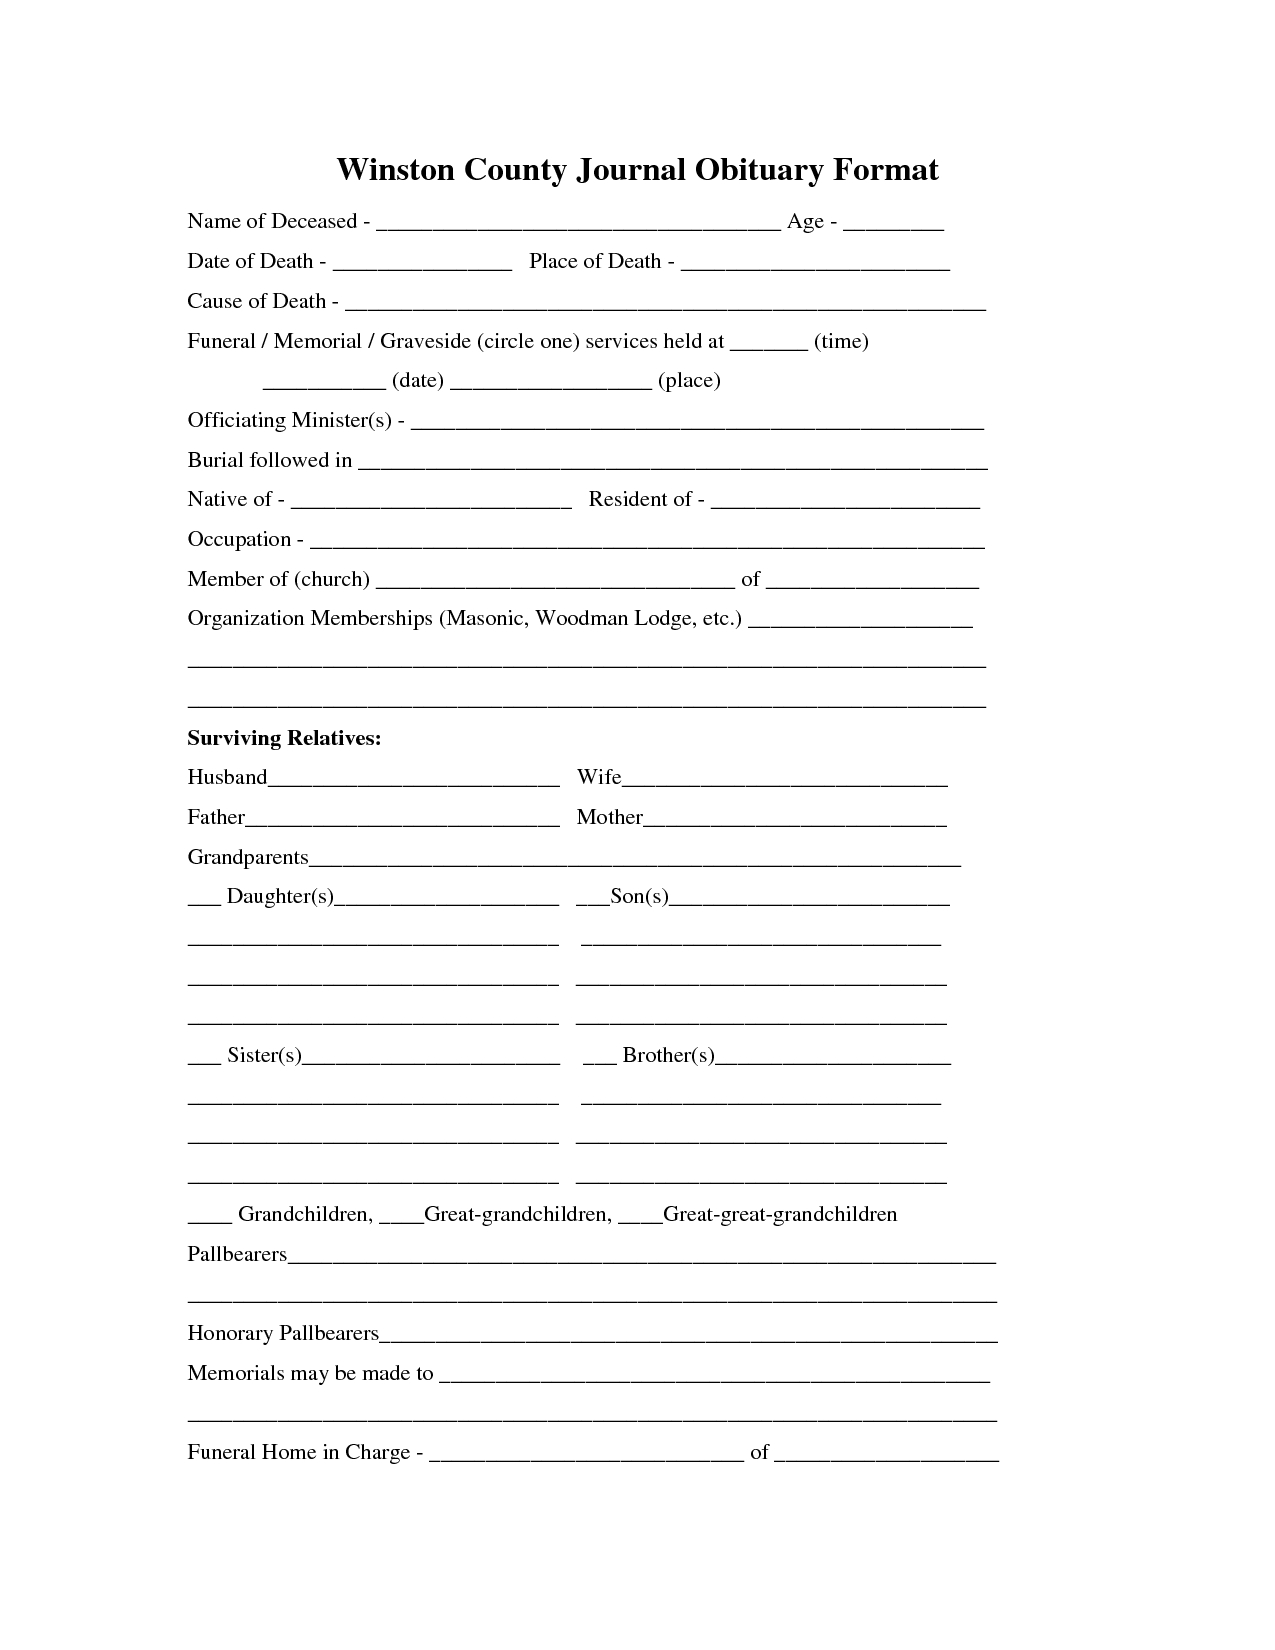 Printable Obituary Template | Fill In The Blank Obituary Template - Free Printable Obituary